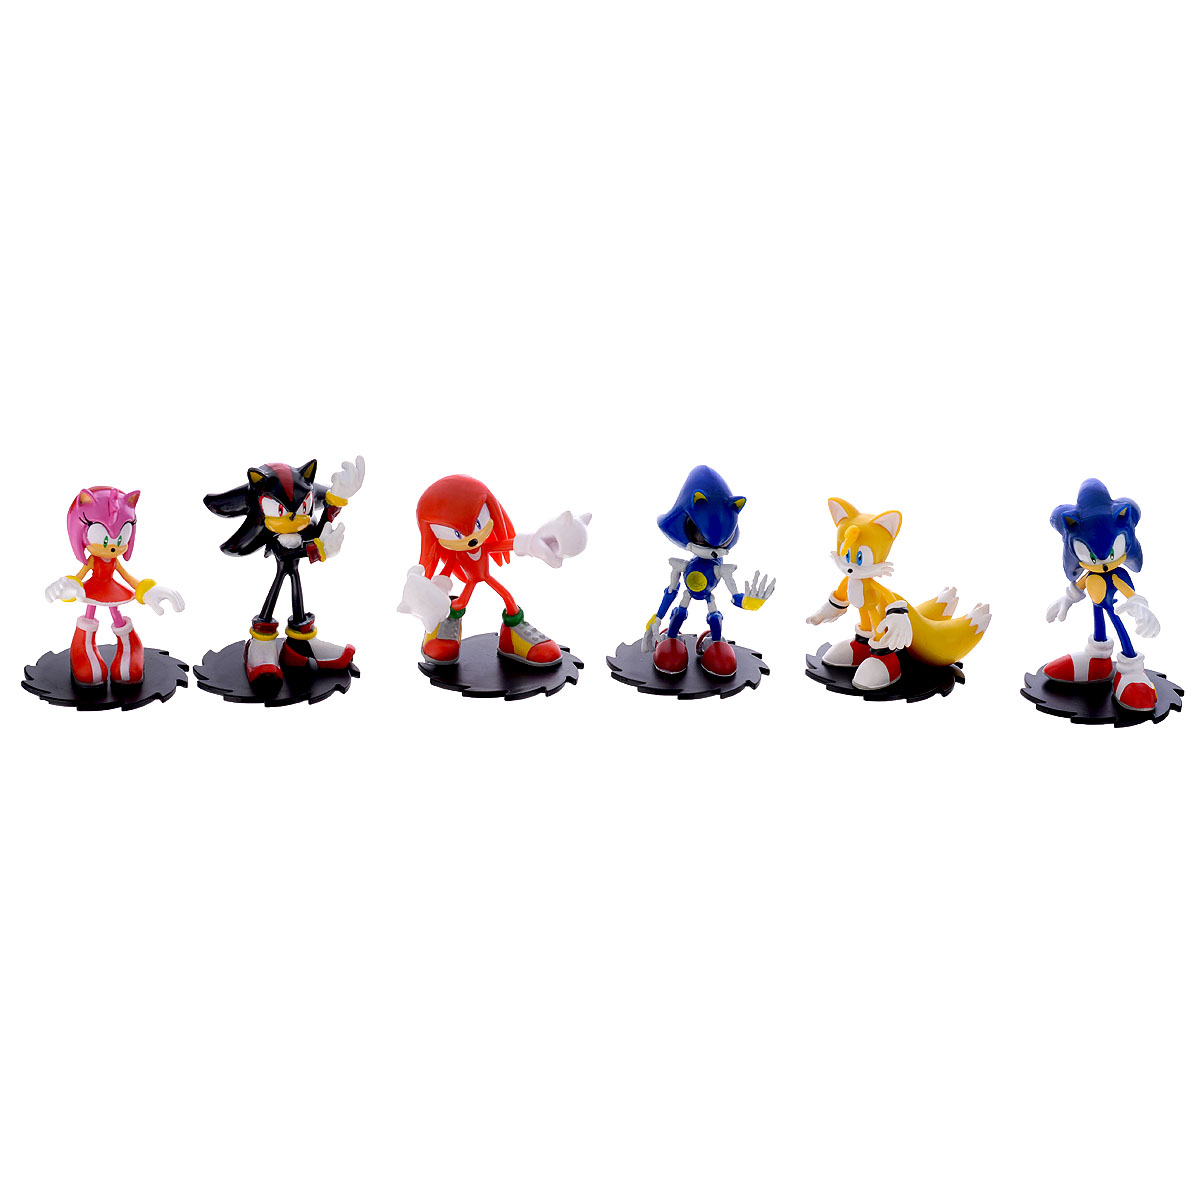 Набор фигурок Sonic Modern Collector's Set, 6 шт free shipping 3inch 7cm sega sonic the hedgehog figure toy pvc toy sonic characters figure toys brinquedos doll 6pcs set